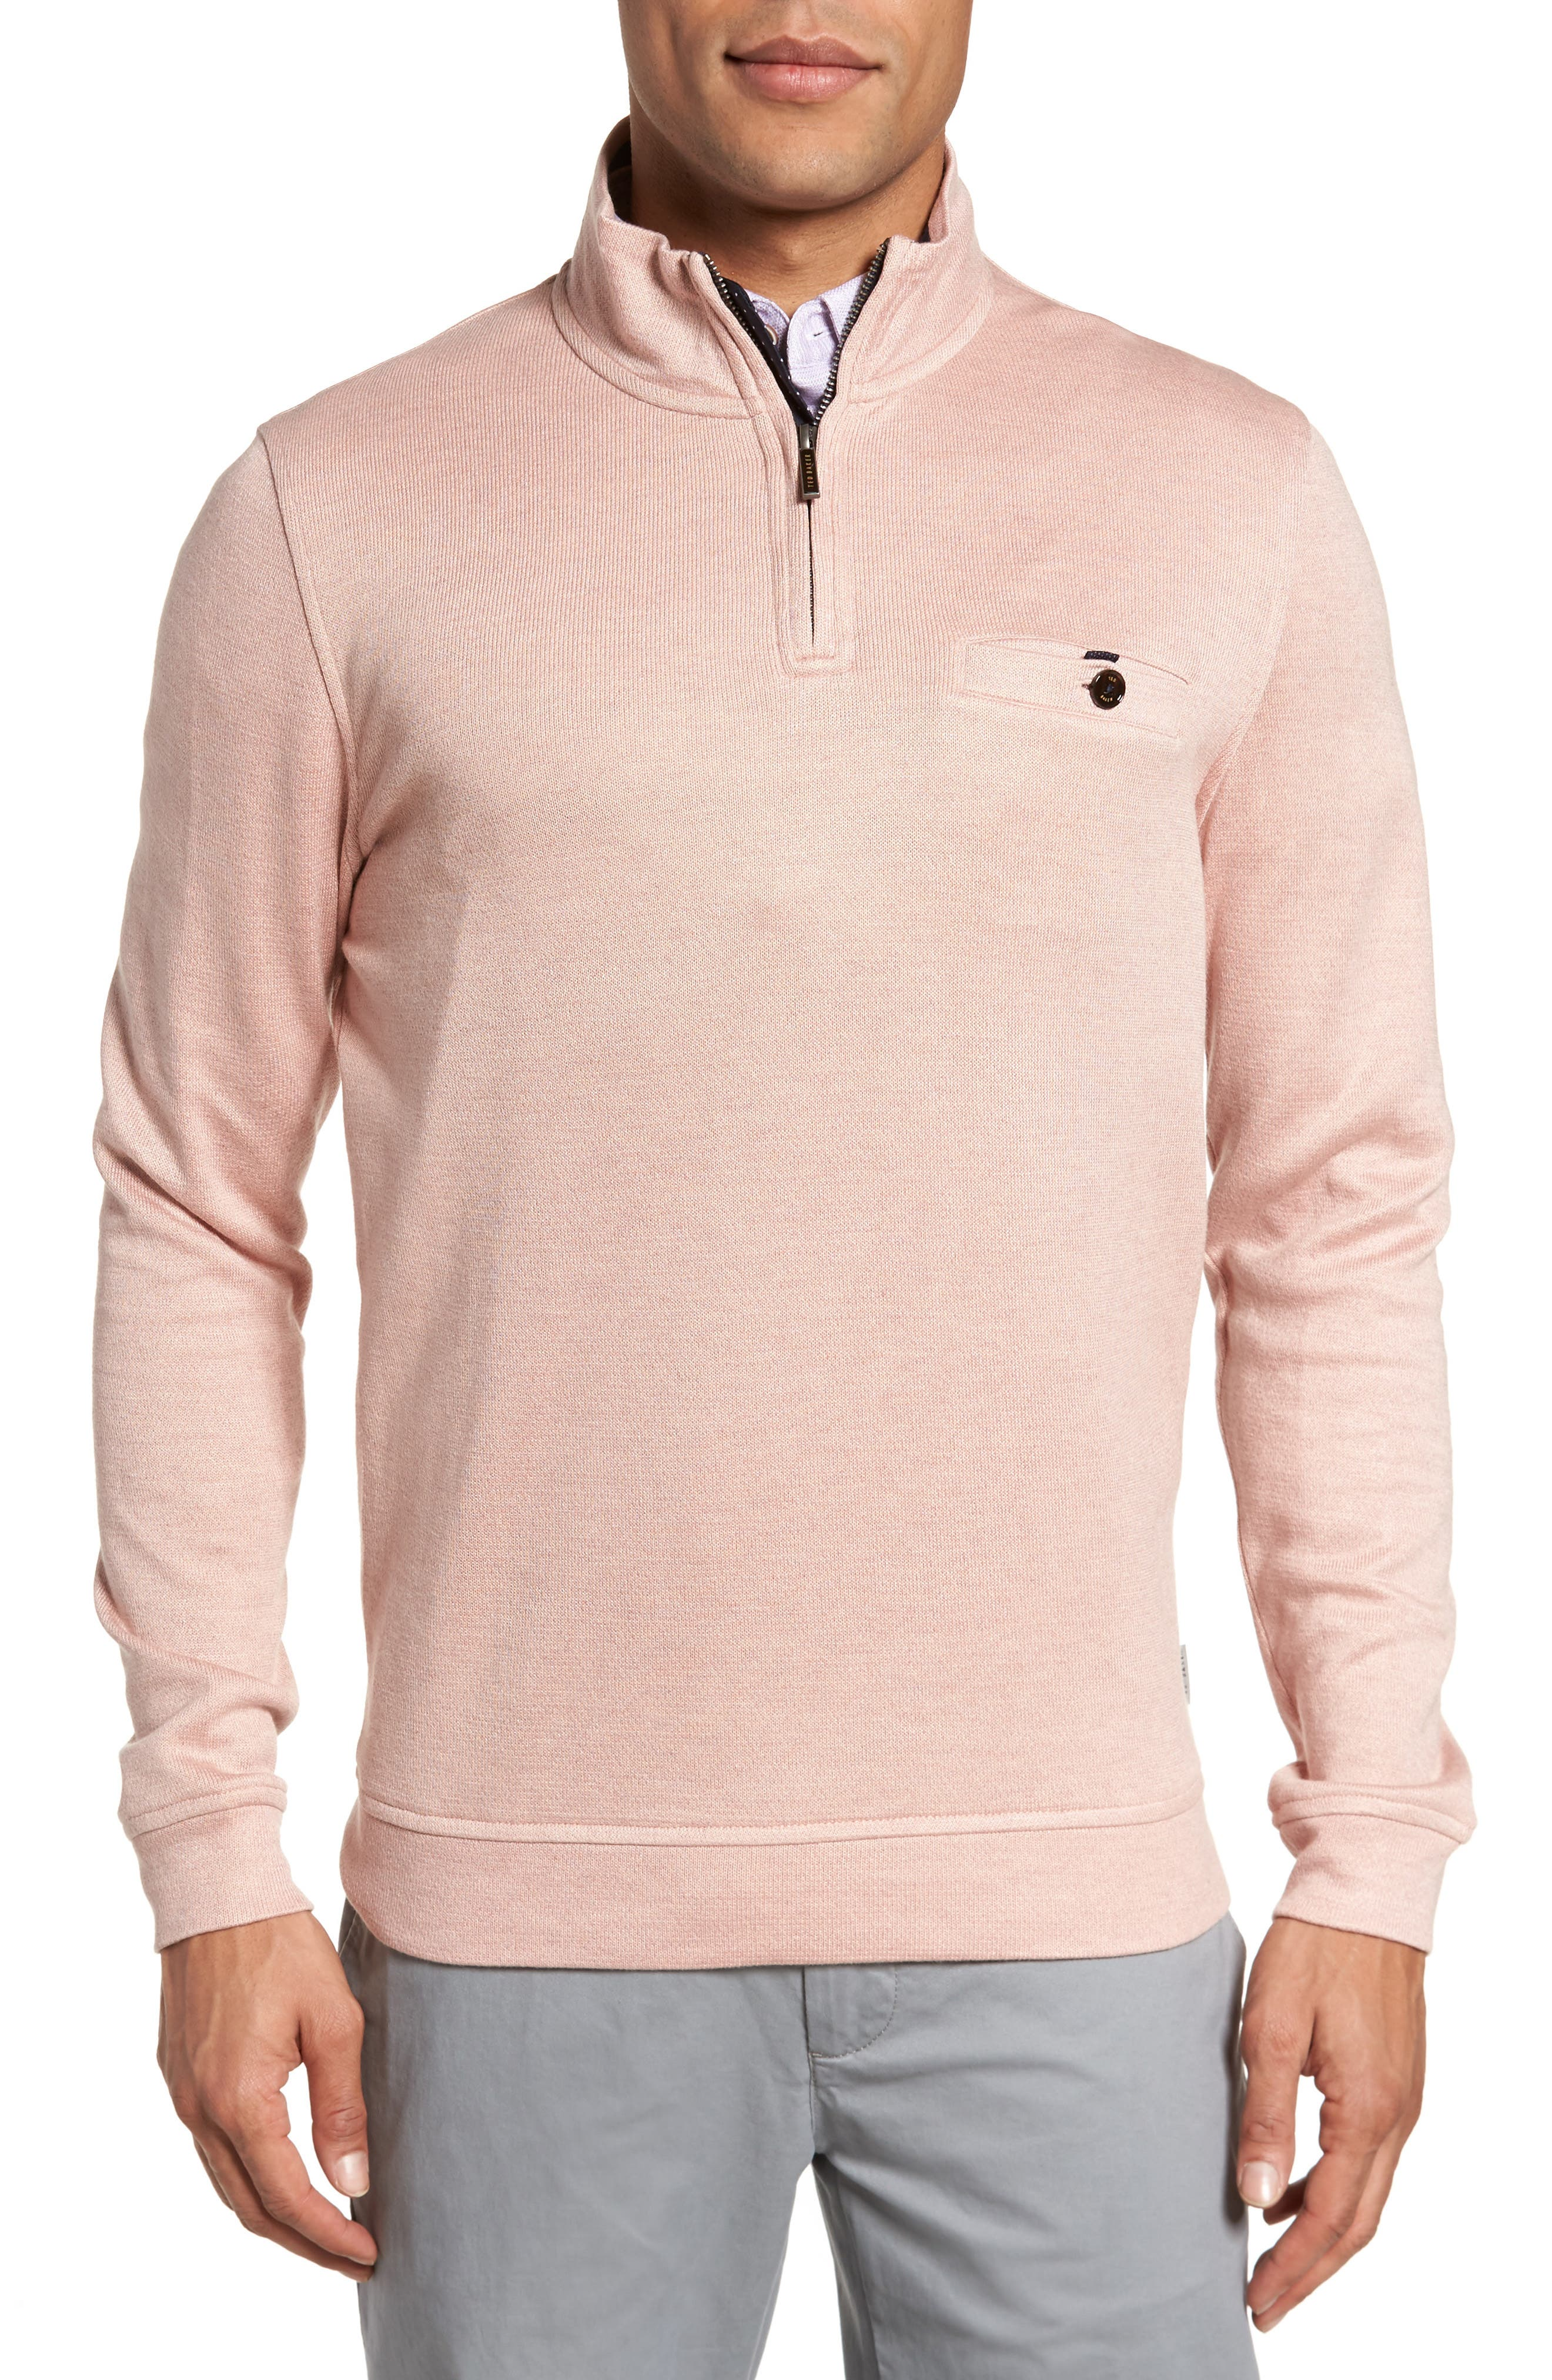 Valerio Quarter Zip Pullover,                         Main,                         color, Dusky Pink